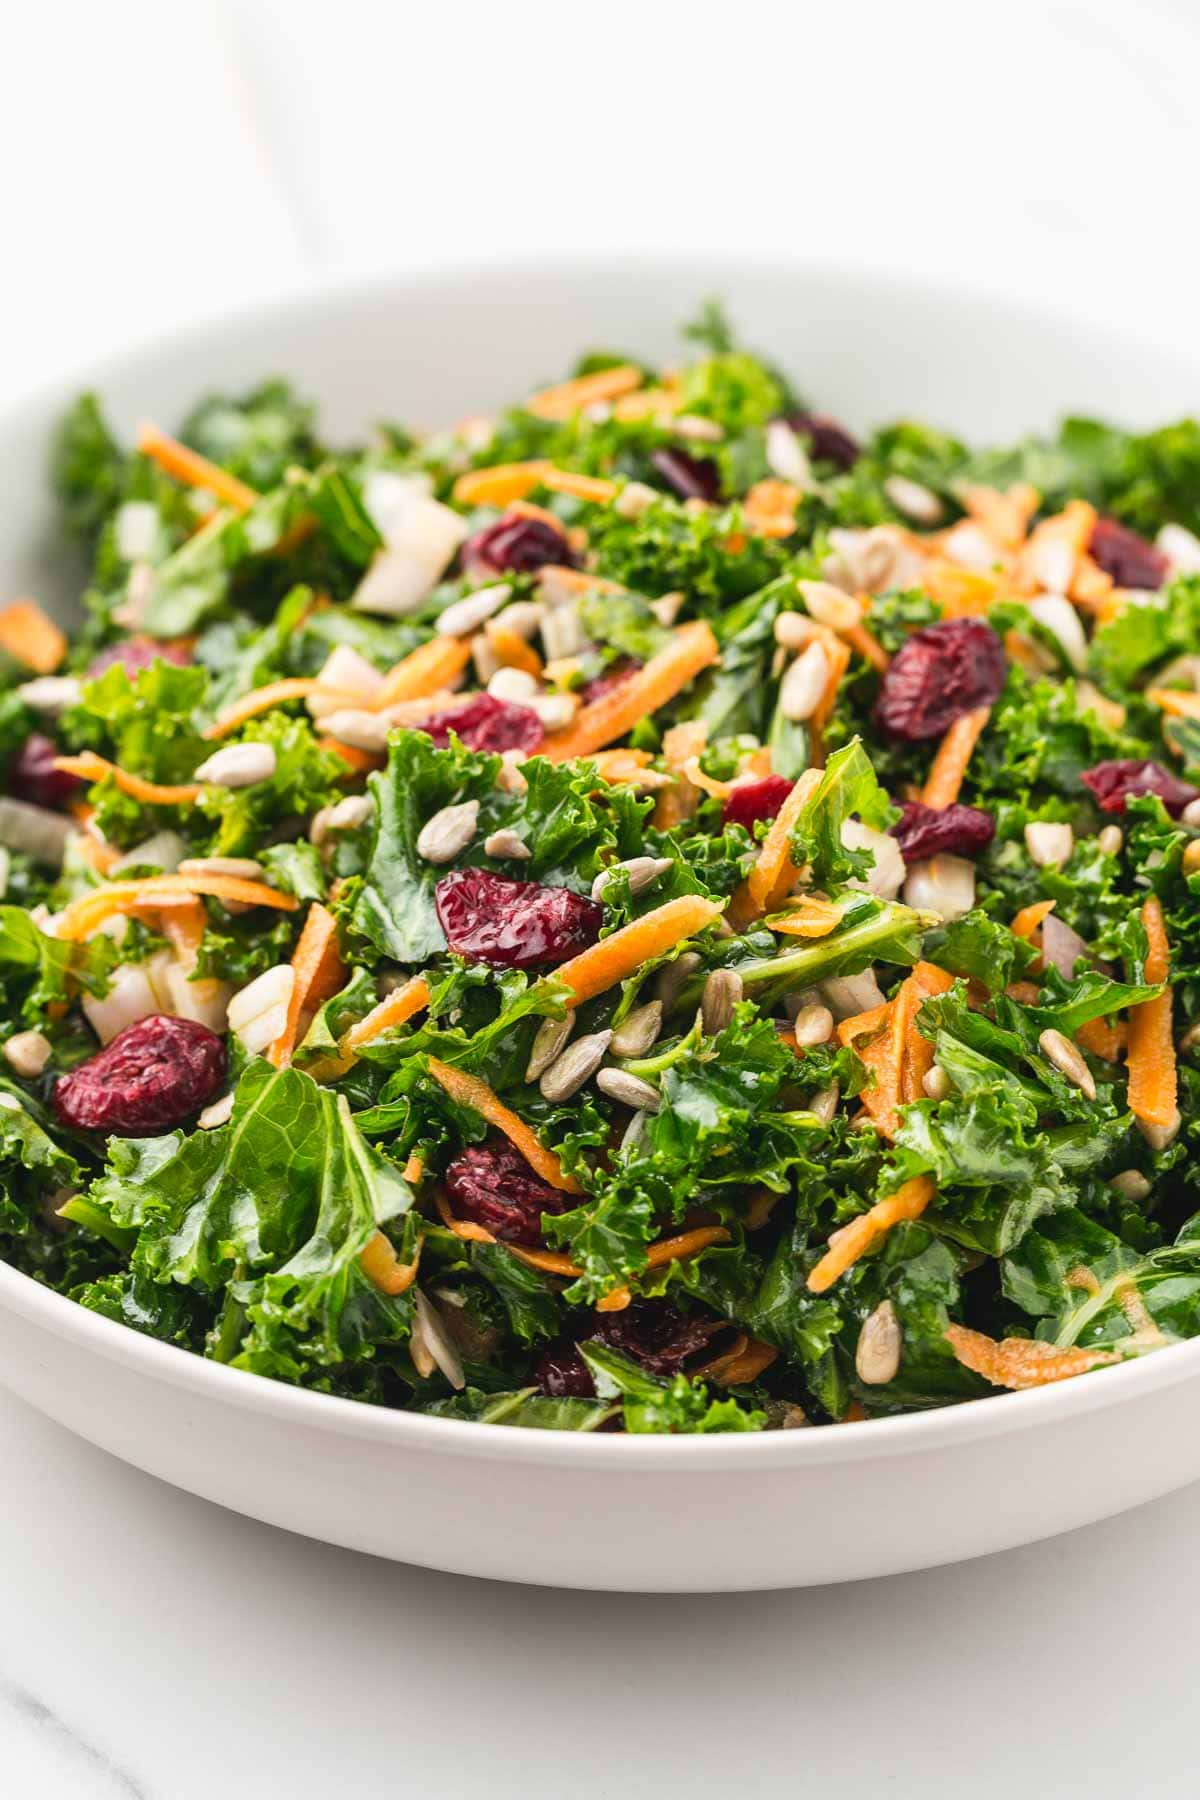 Kale salad in a large white bowl